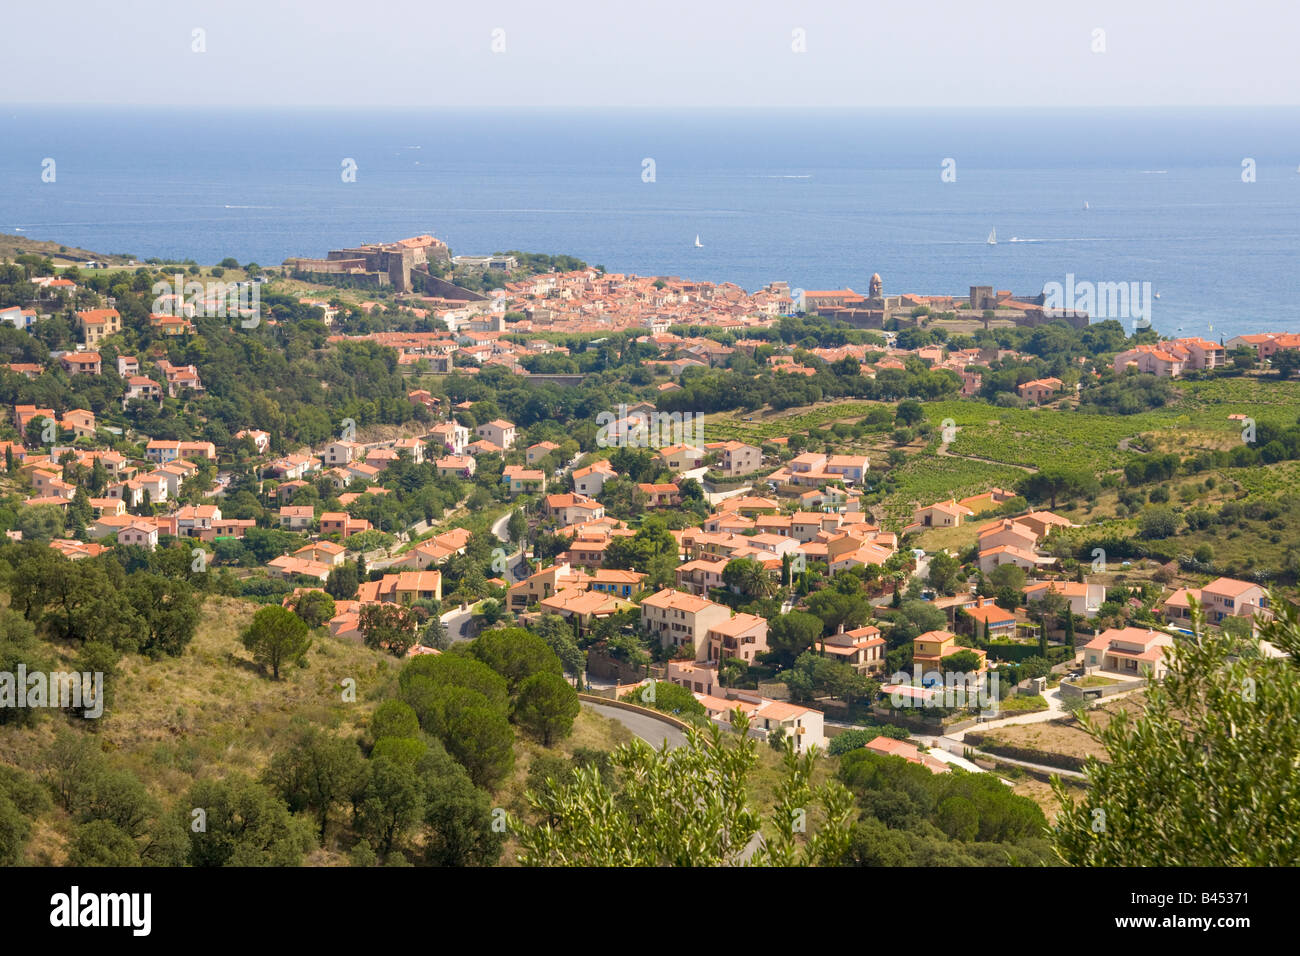 View over Collioure on the mediterranean Cote Vermeille / Southern France - Stock Image